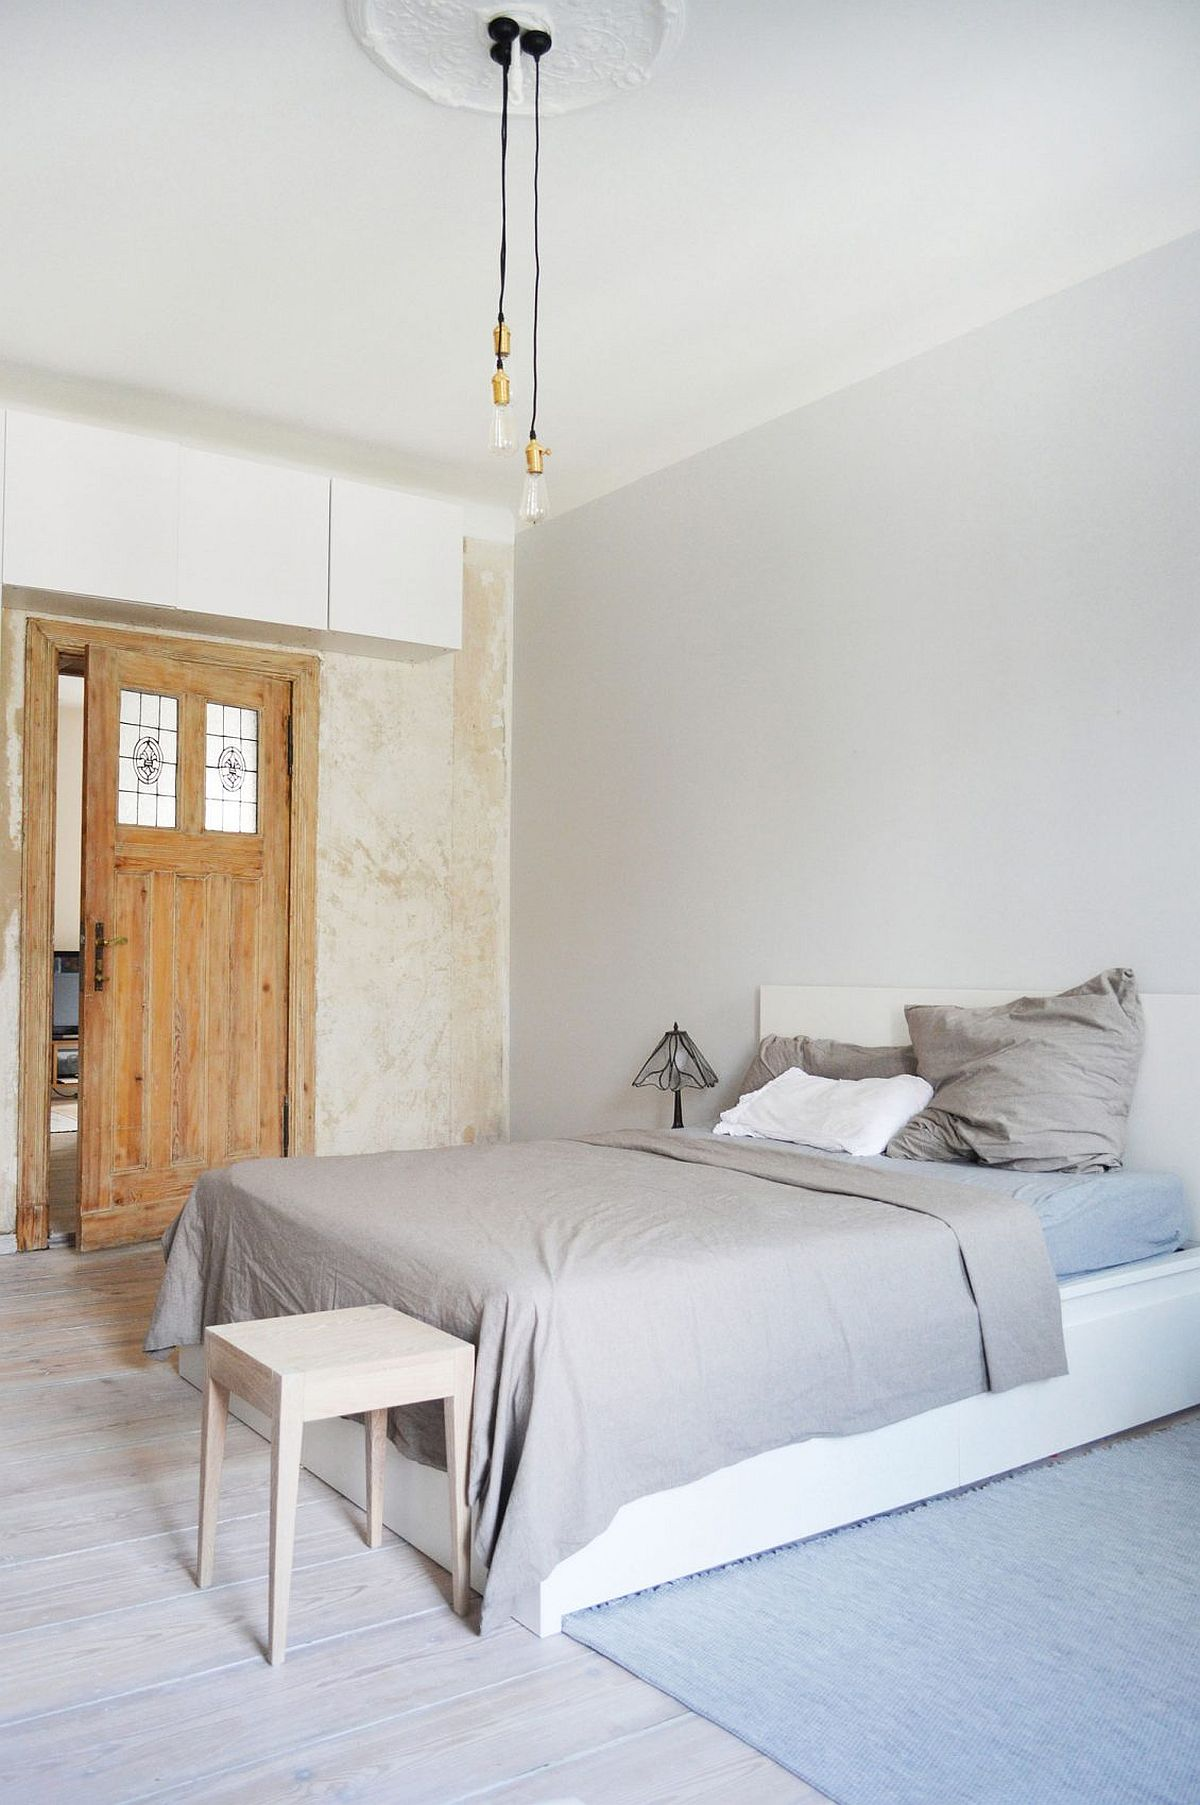 Textured walls give the bedroom a classic, modern look